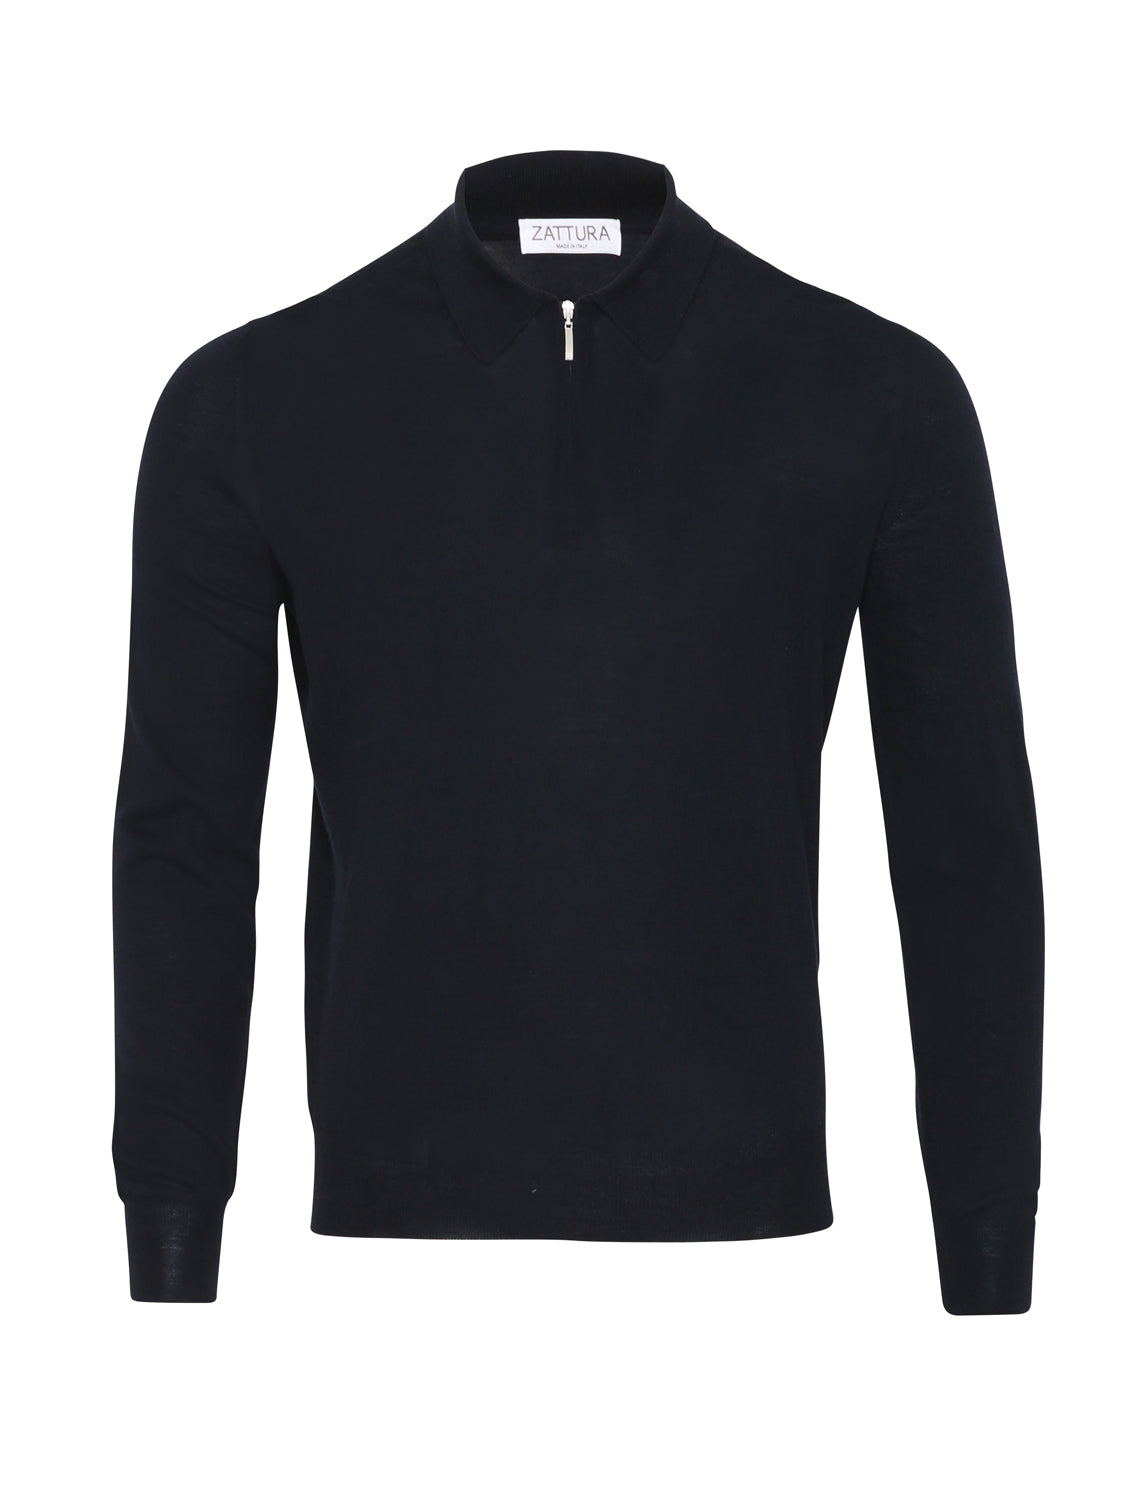 Zattura Superfine Merino Zip Long Sleeve Polo (Navy) - Union 22